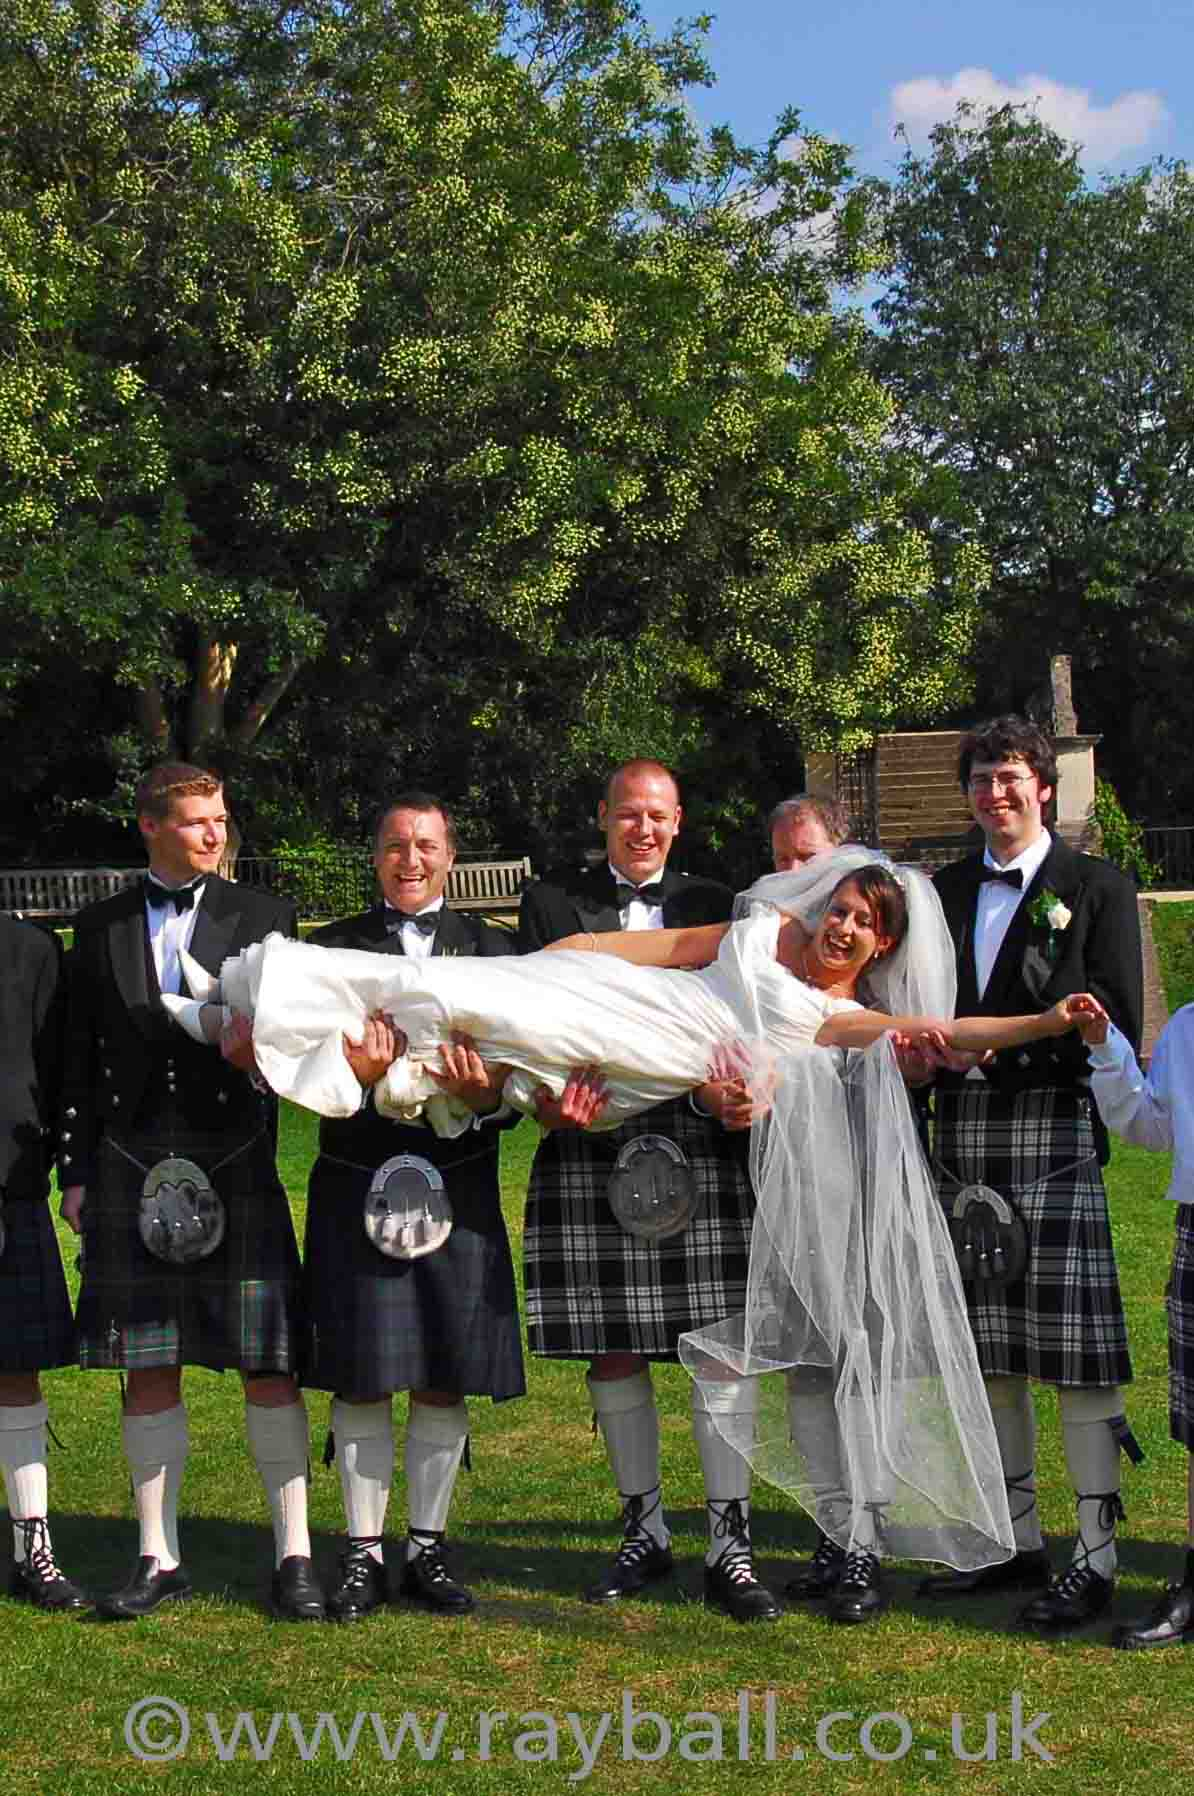 Banstead wedding photograph with Scottish theme